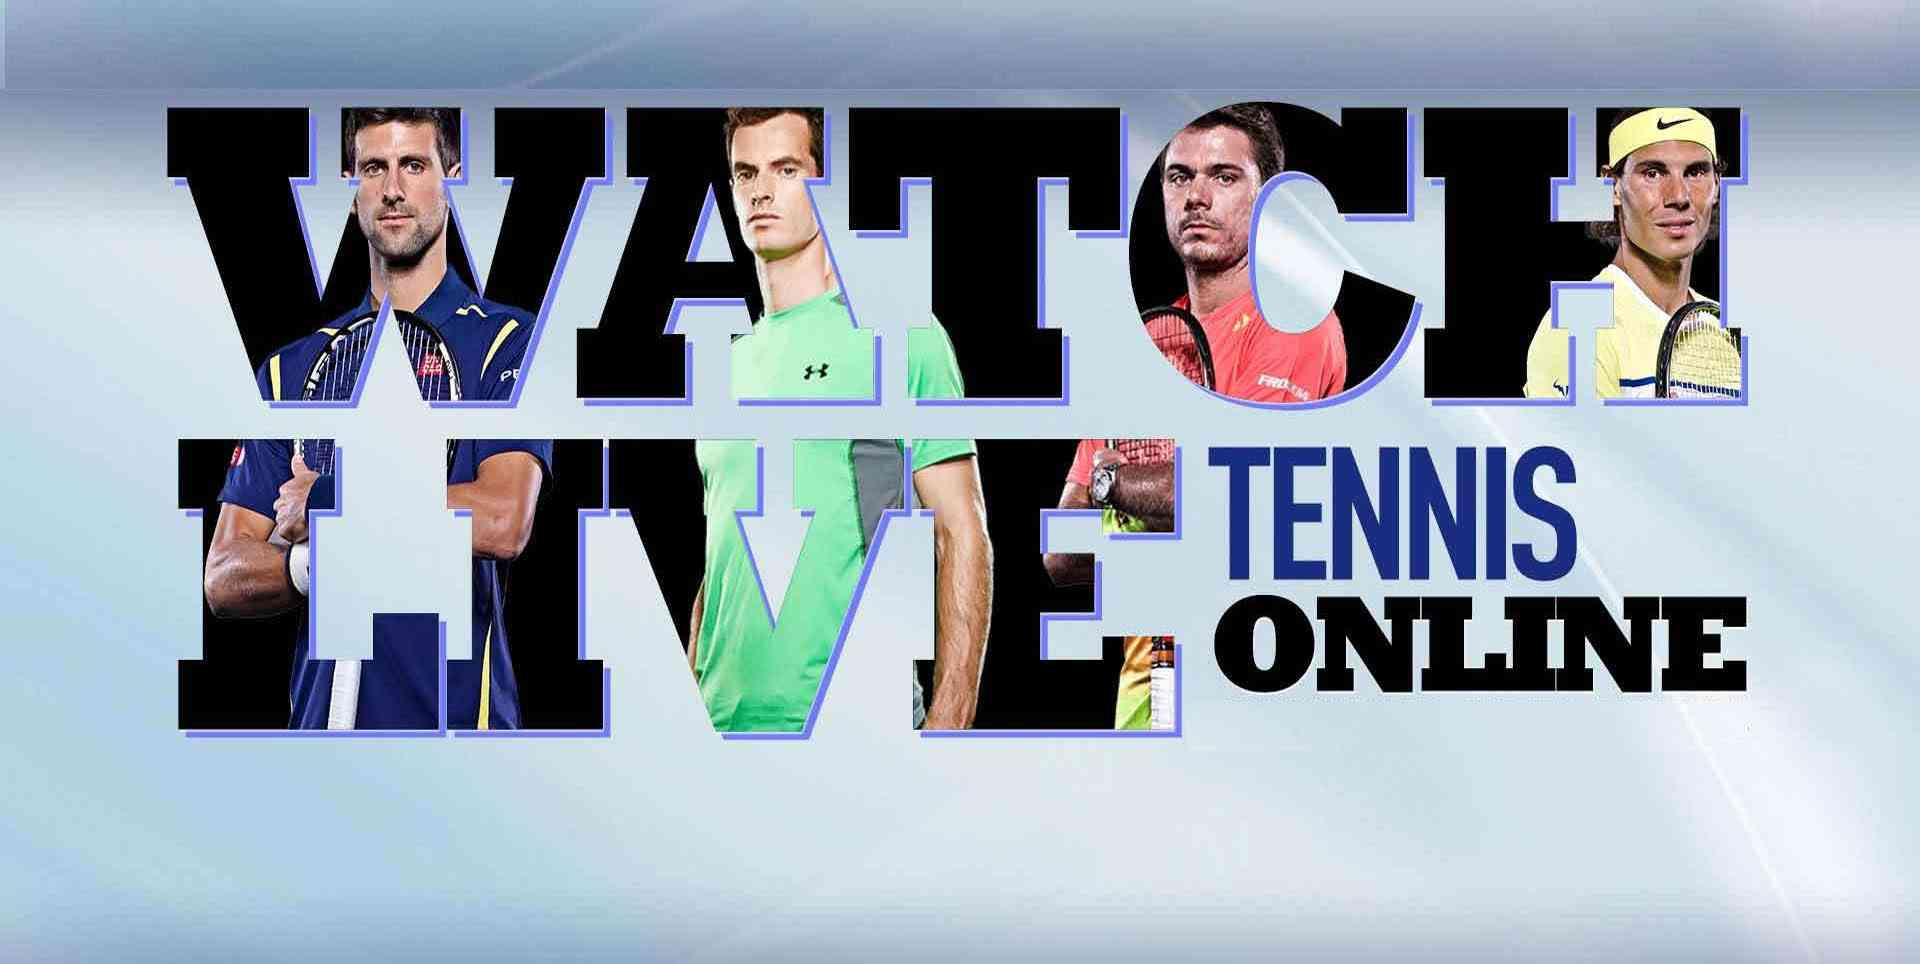 Watch E. Bouchard vs P. Kvitova Womens Singles Final Online